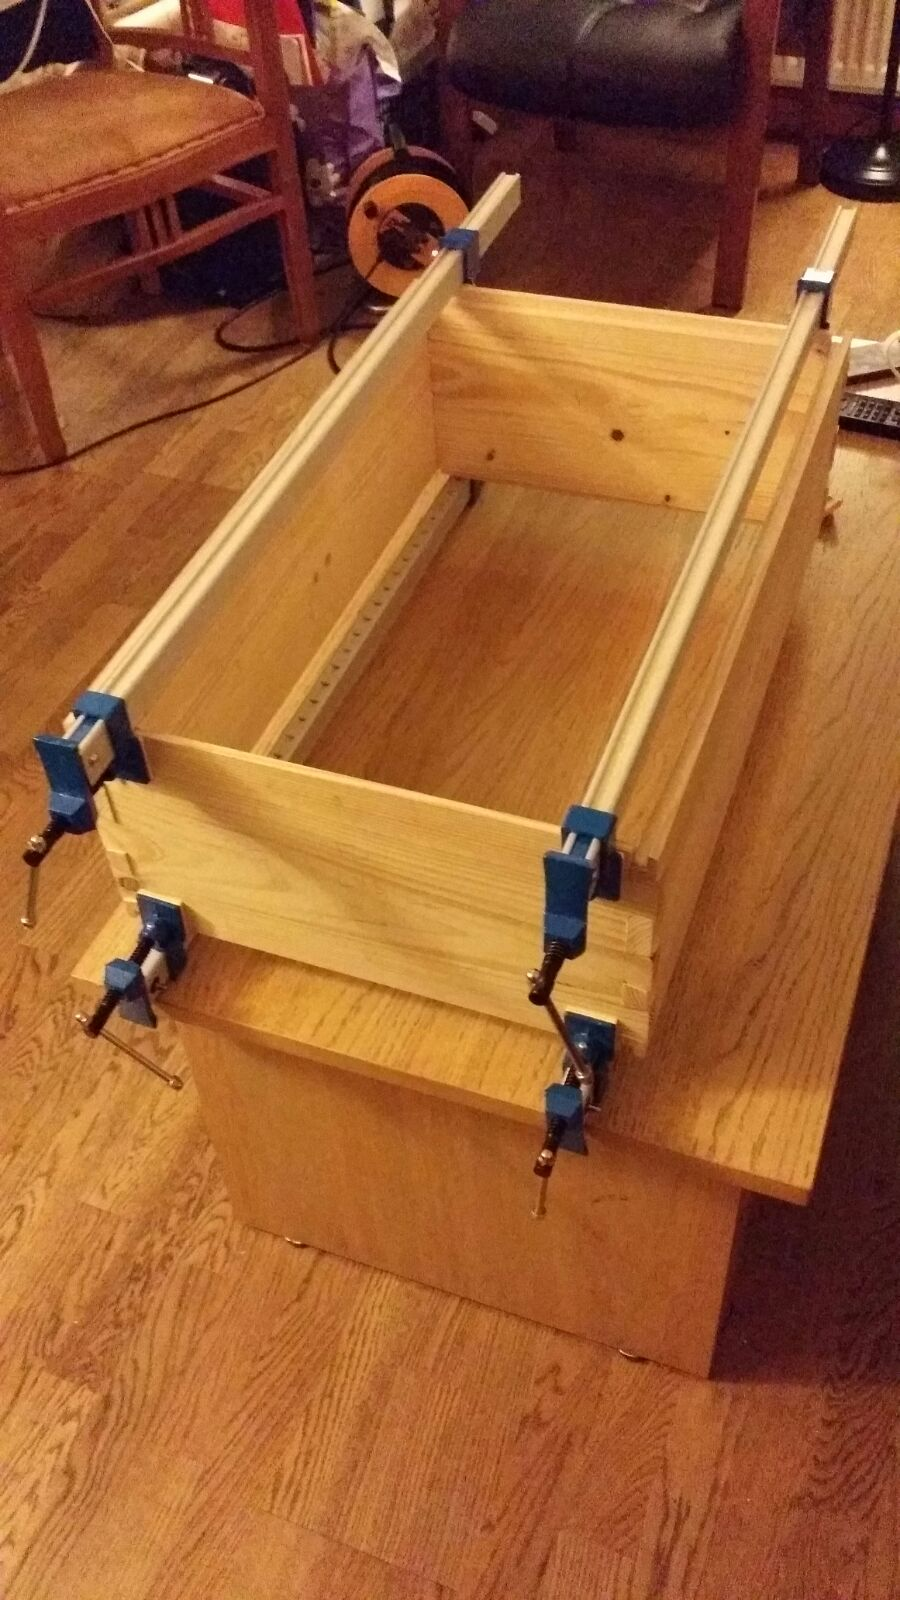 Picture of Step 2: the Frame